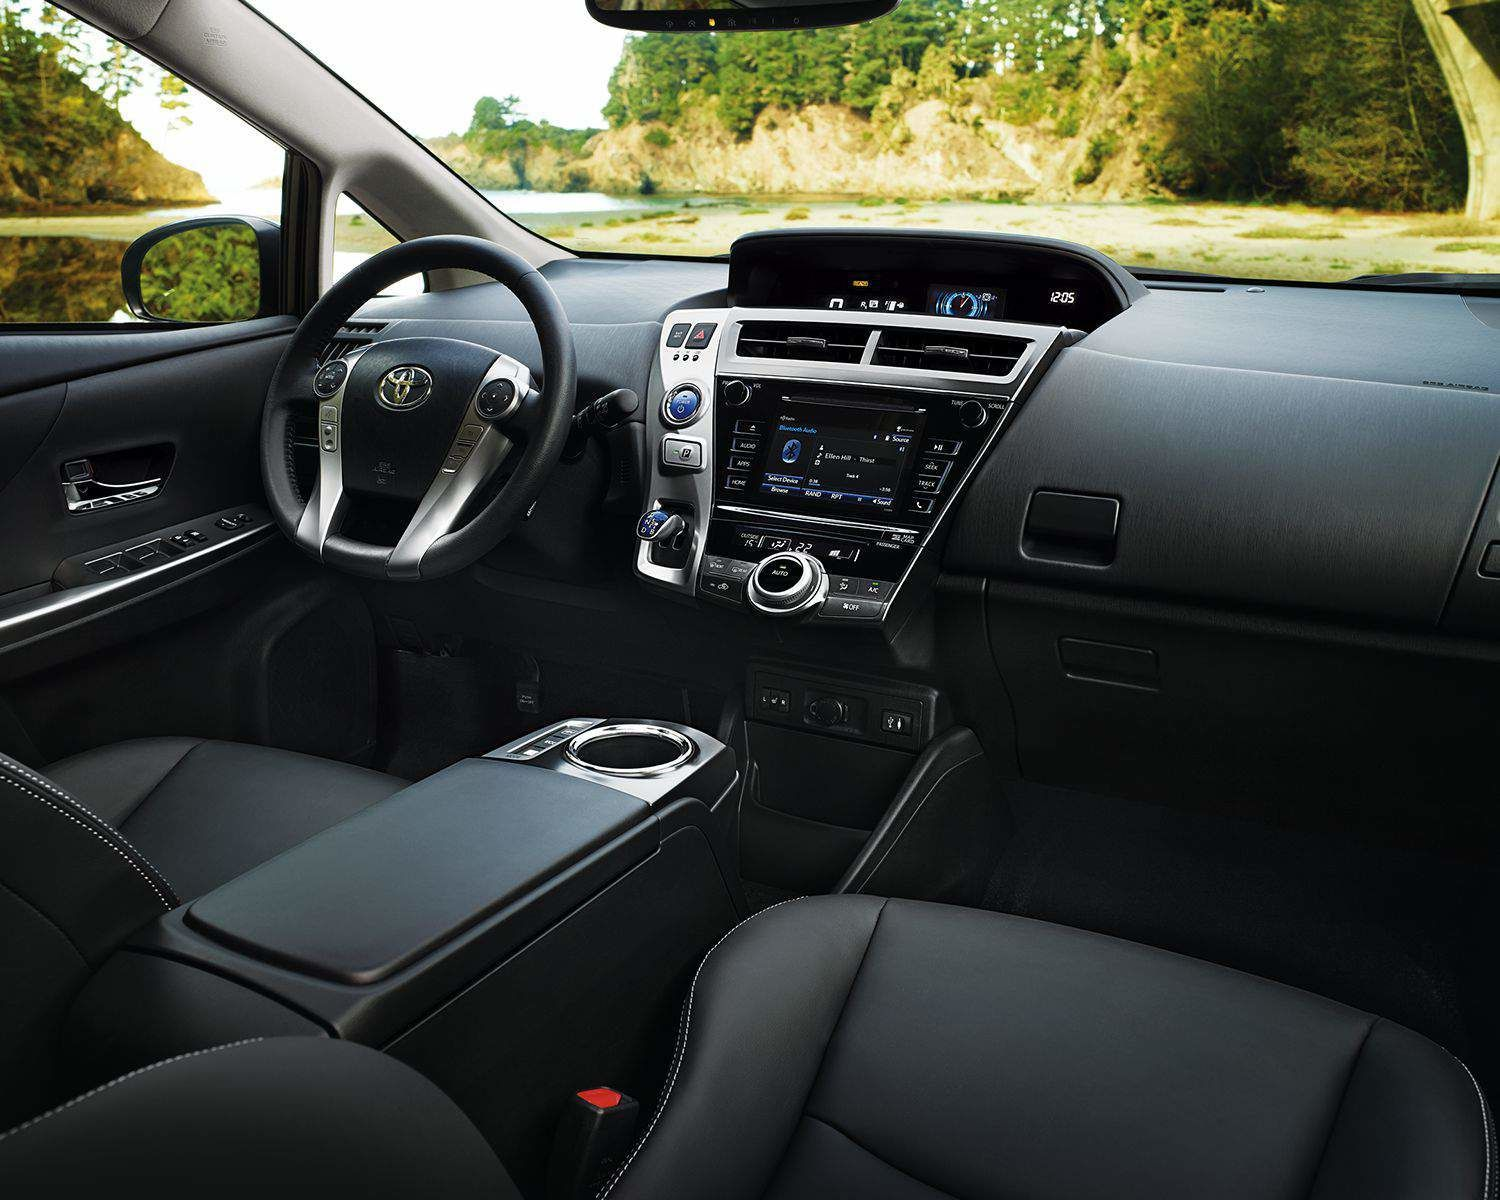 Prius v Technology Package Interior shown in Black SofTex